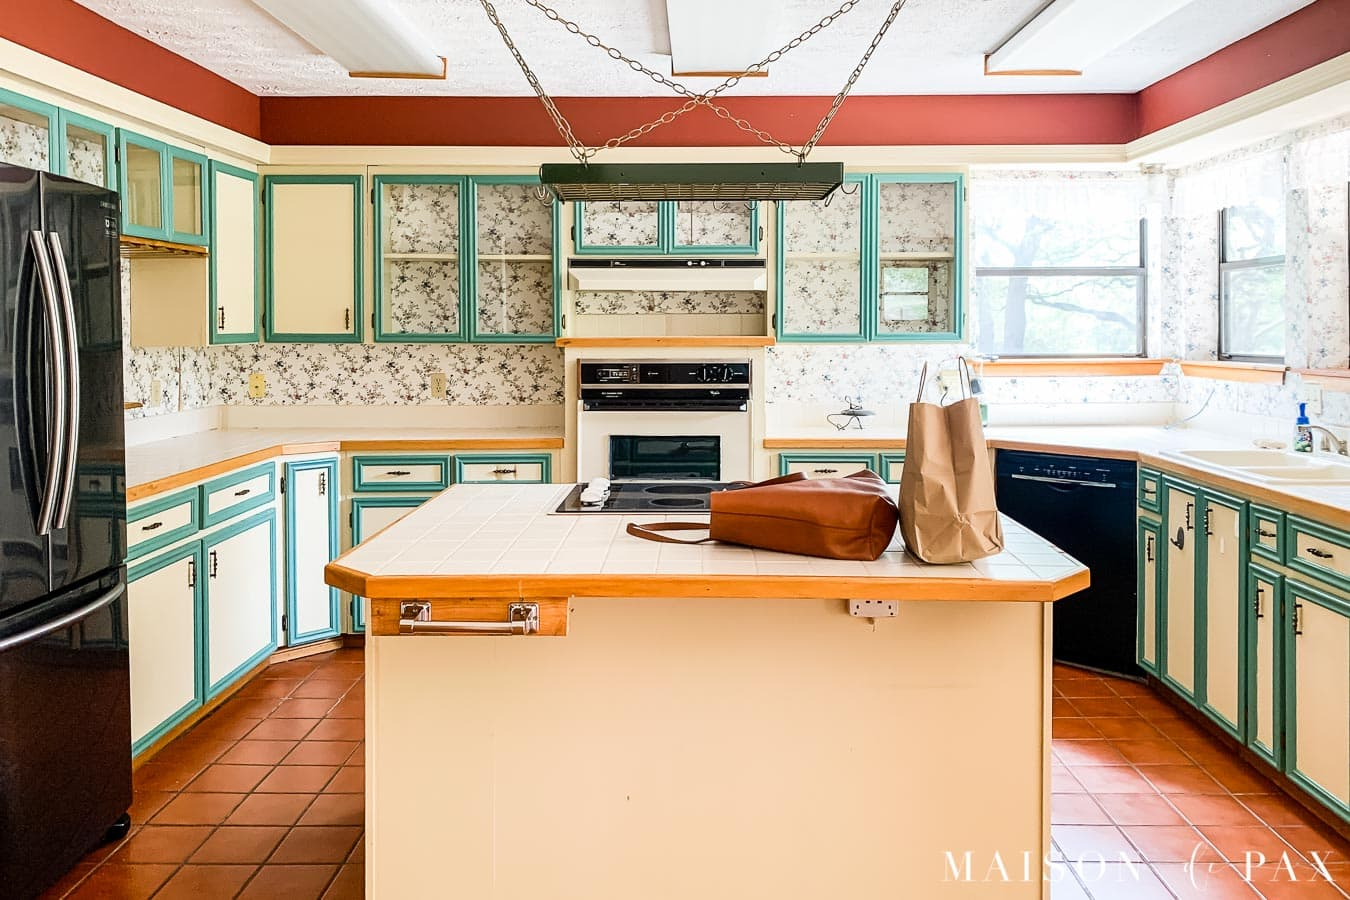 dated 80s kitchen before renovation - see how it changed | Maison de Pax